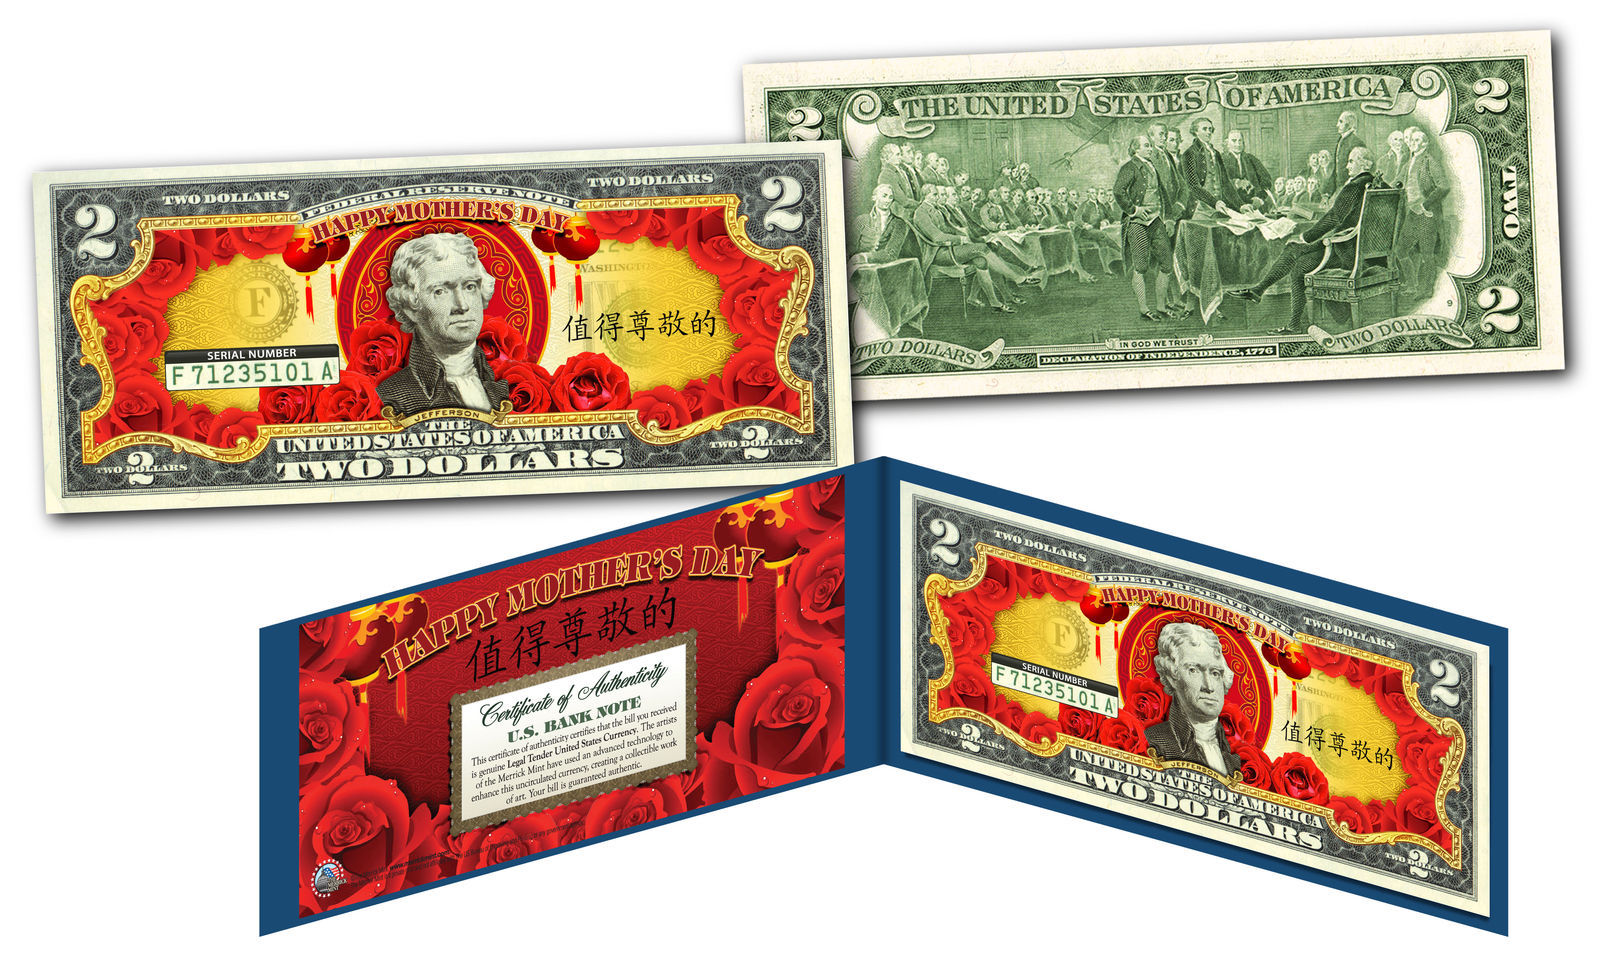 Asian Themed HAPPY MOTHERS DAY *Lucky Money* Legal Tender U.S $2 Bill w/ Display